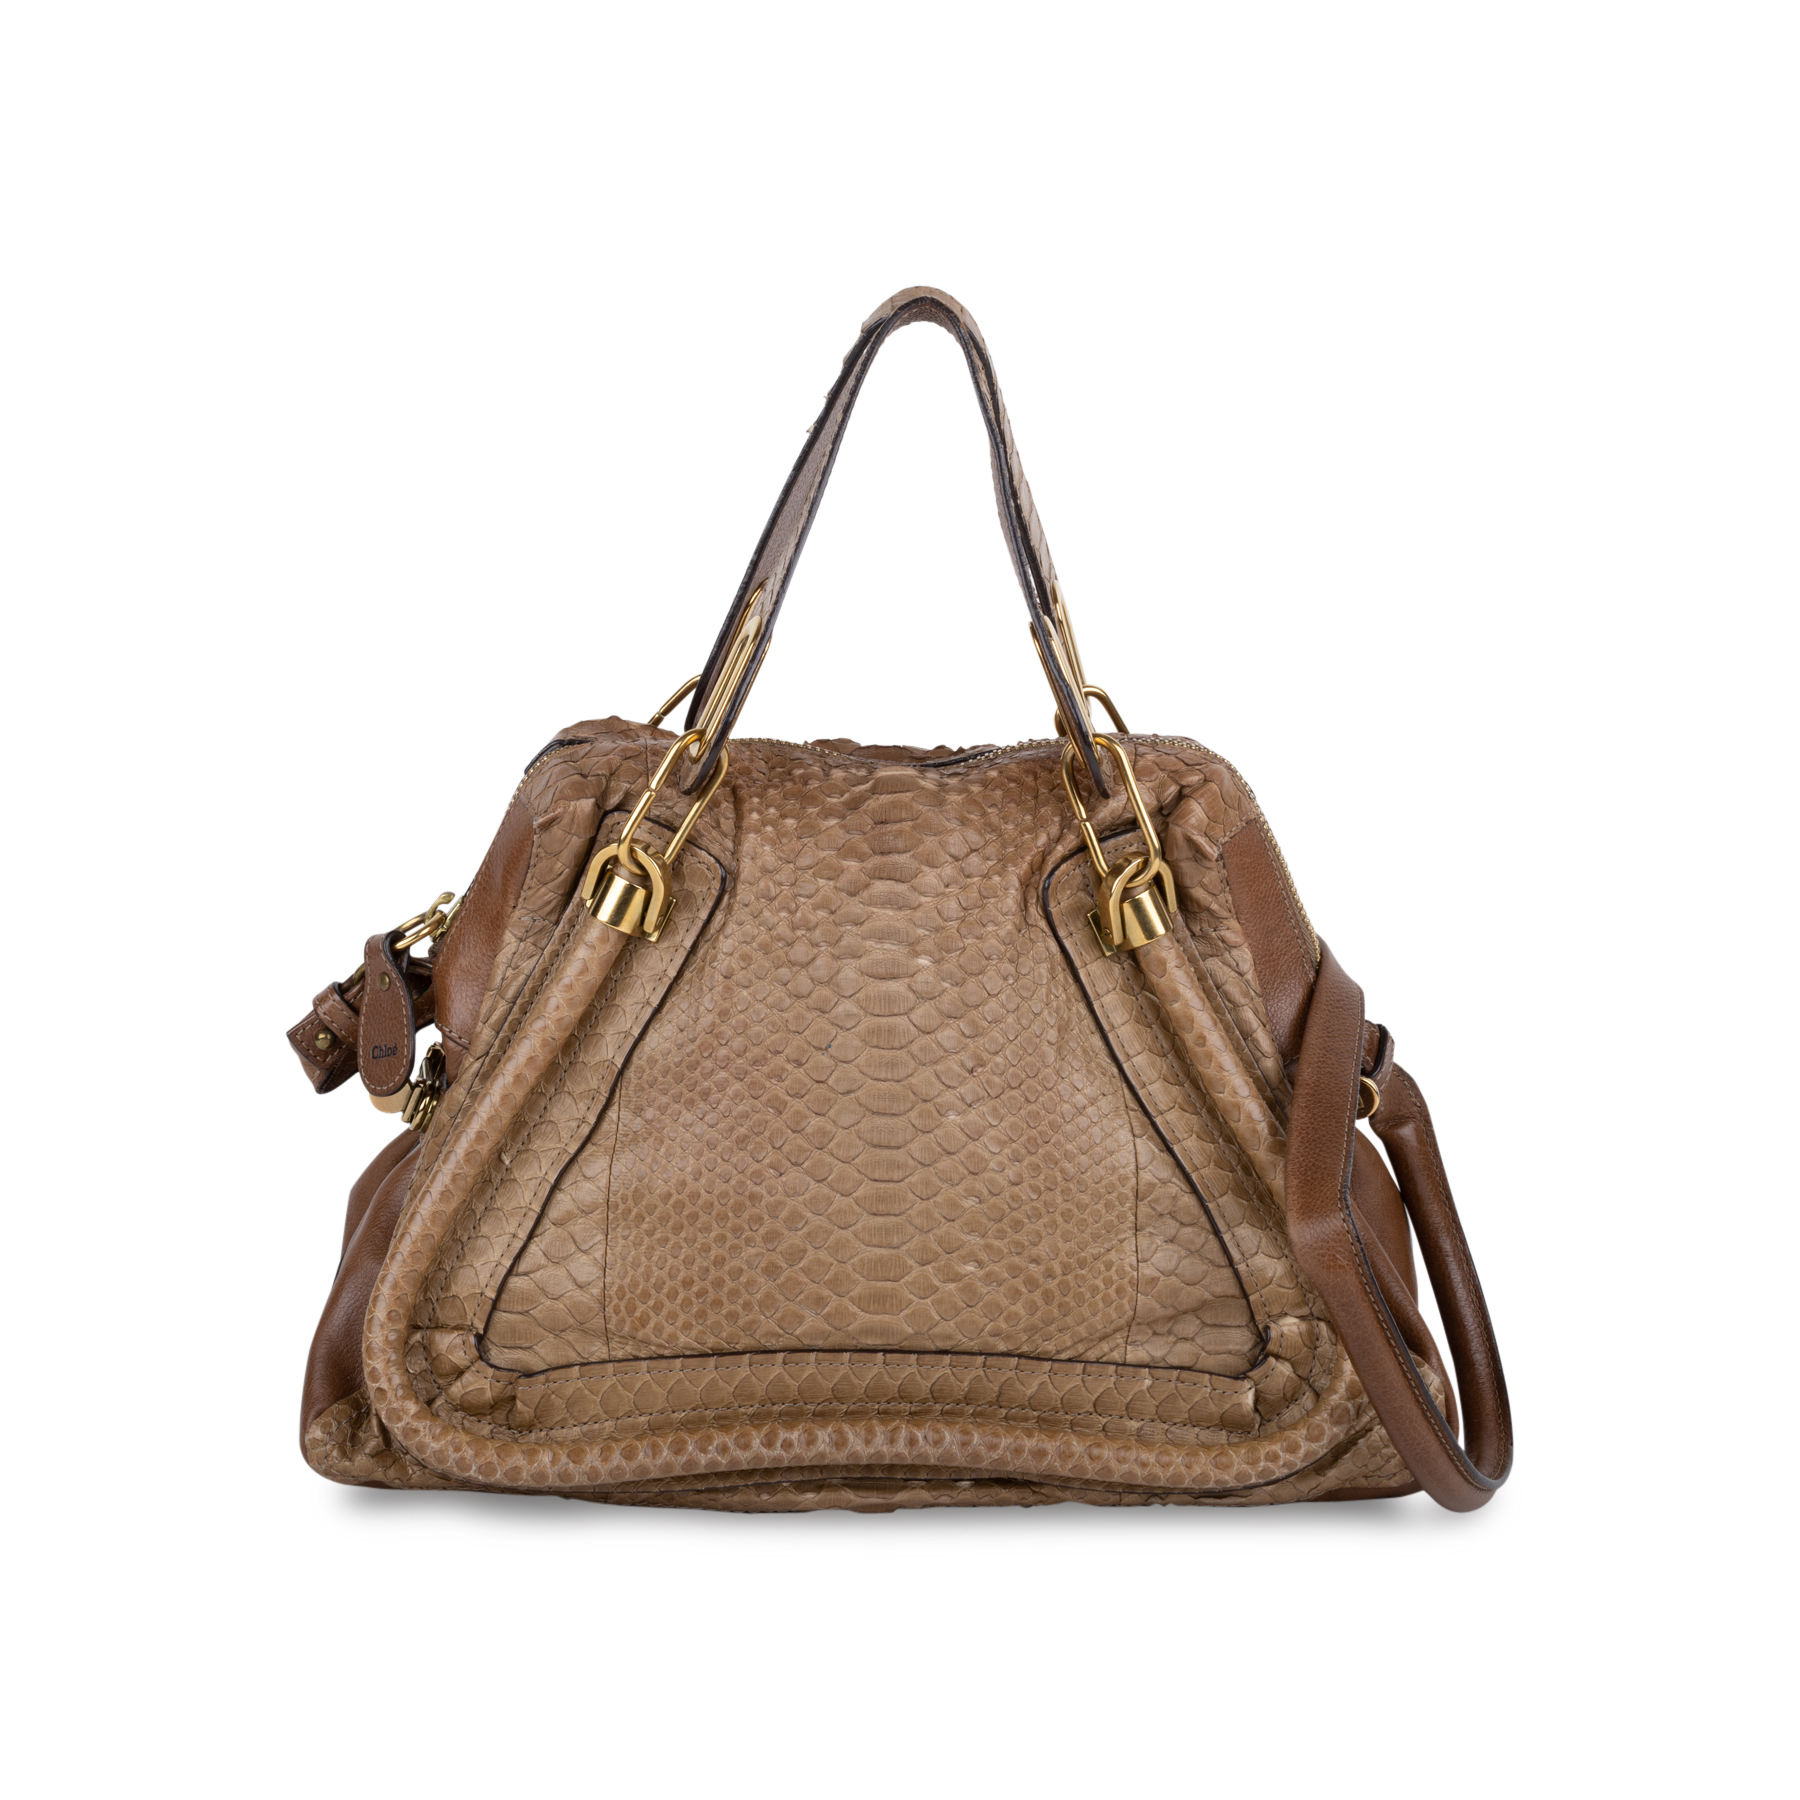 5e445b06d56 Authentic Second Hand Chloé Medium Snakeskin and Leather Paraty  (PSS-580-00003)